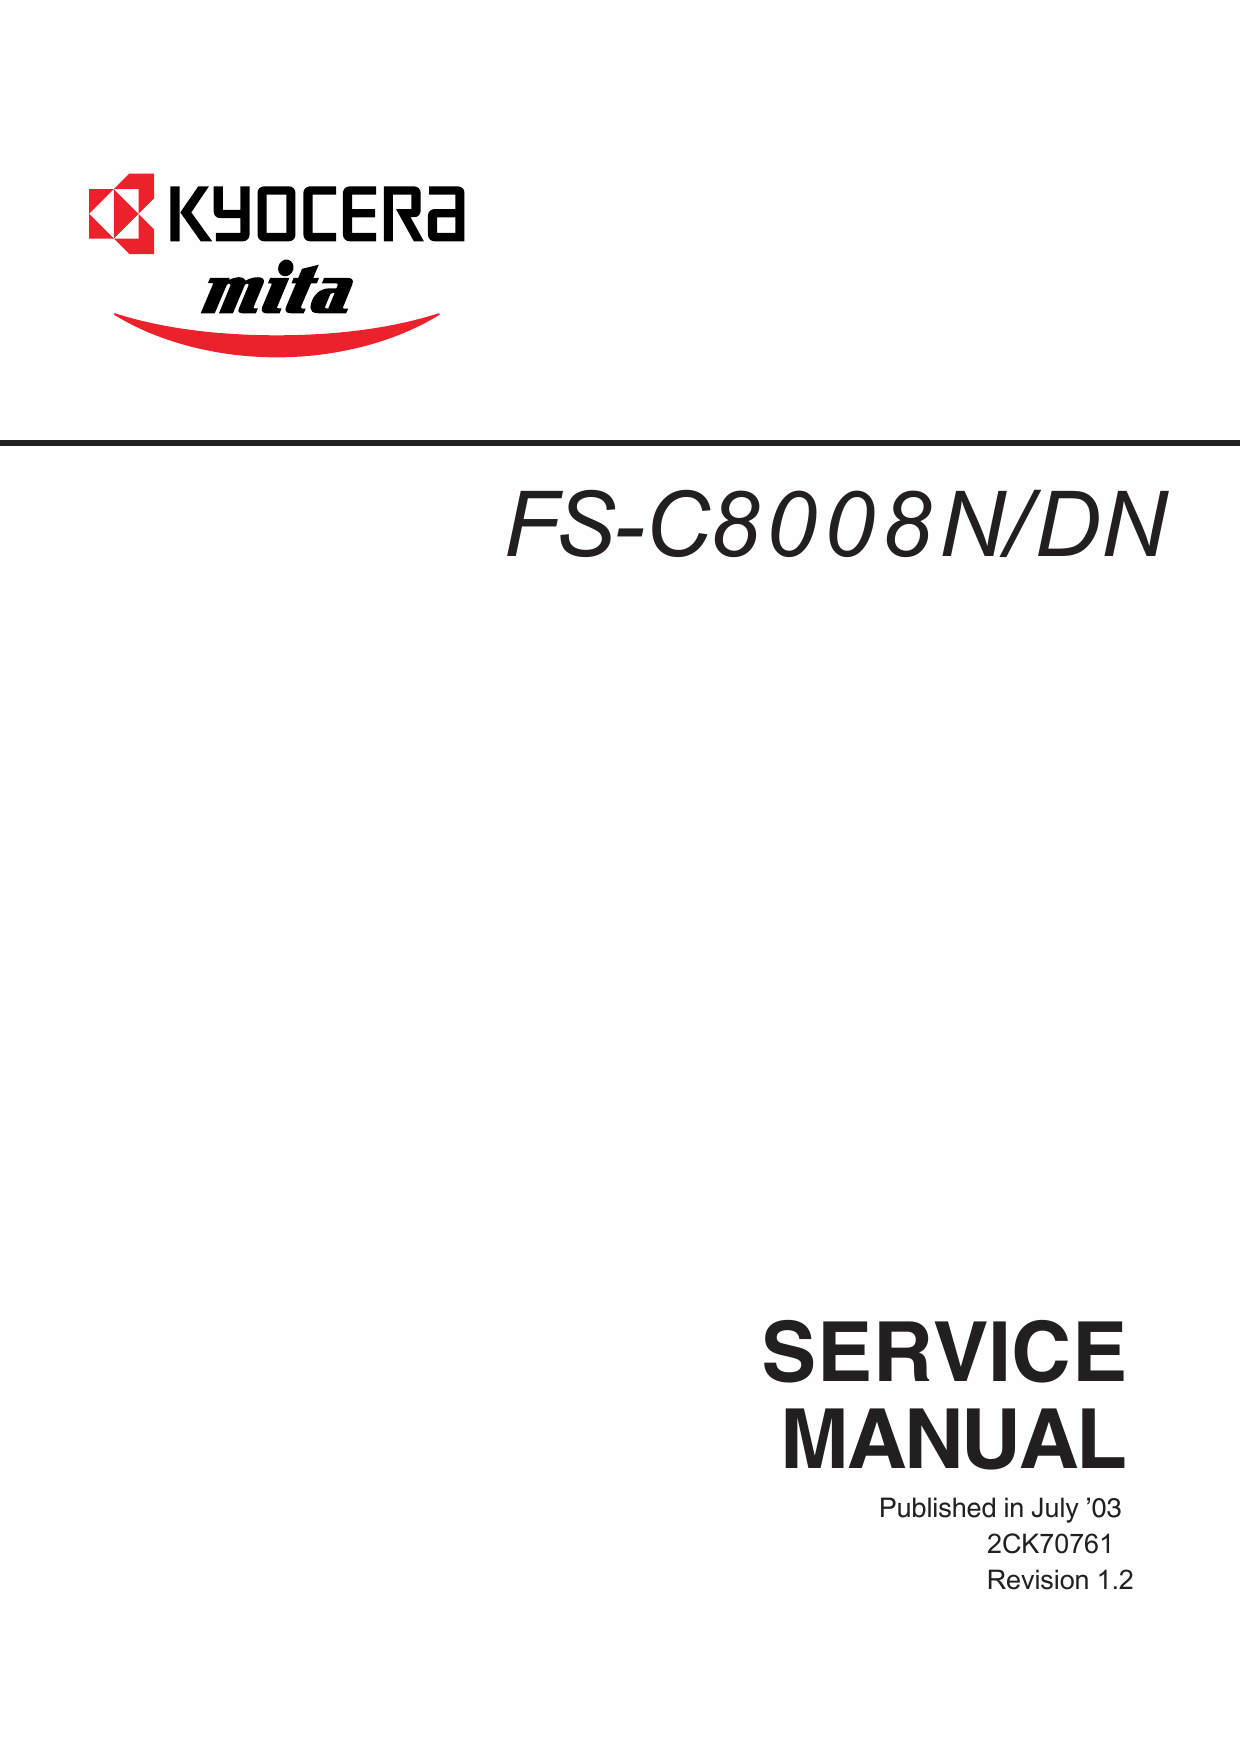 KYOCERA ColorLaserPrinter FS-C8008N DN Parts and Service Manual-1